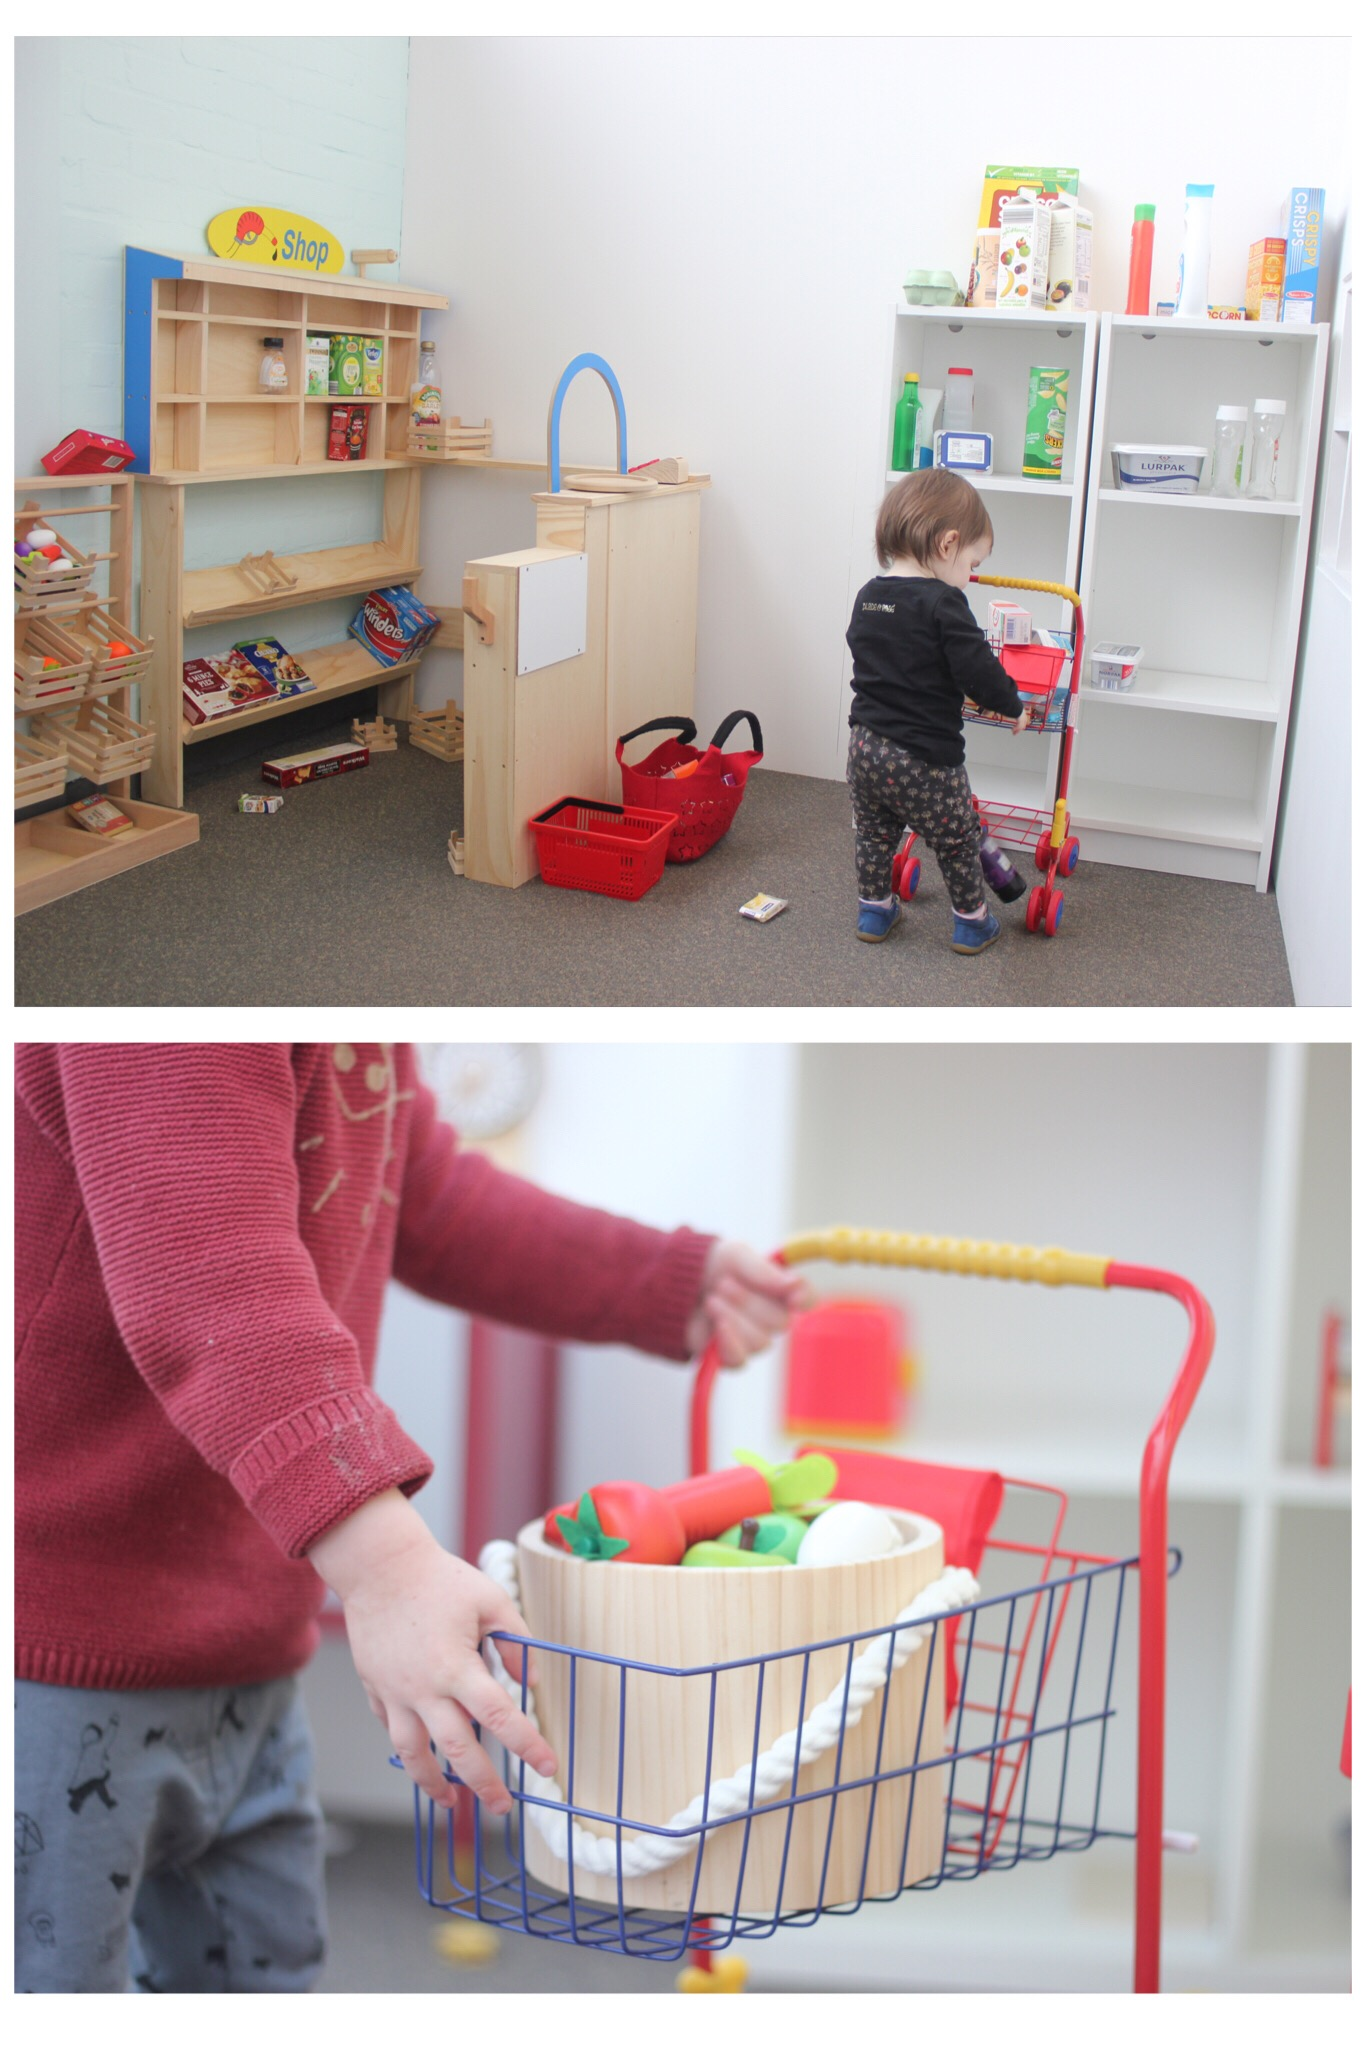 Lets Play Big Children's Role Play Washington Cafe and Shop